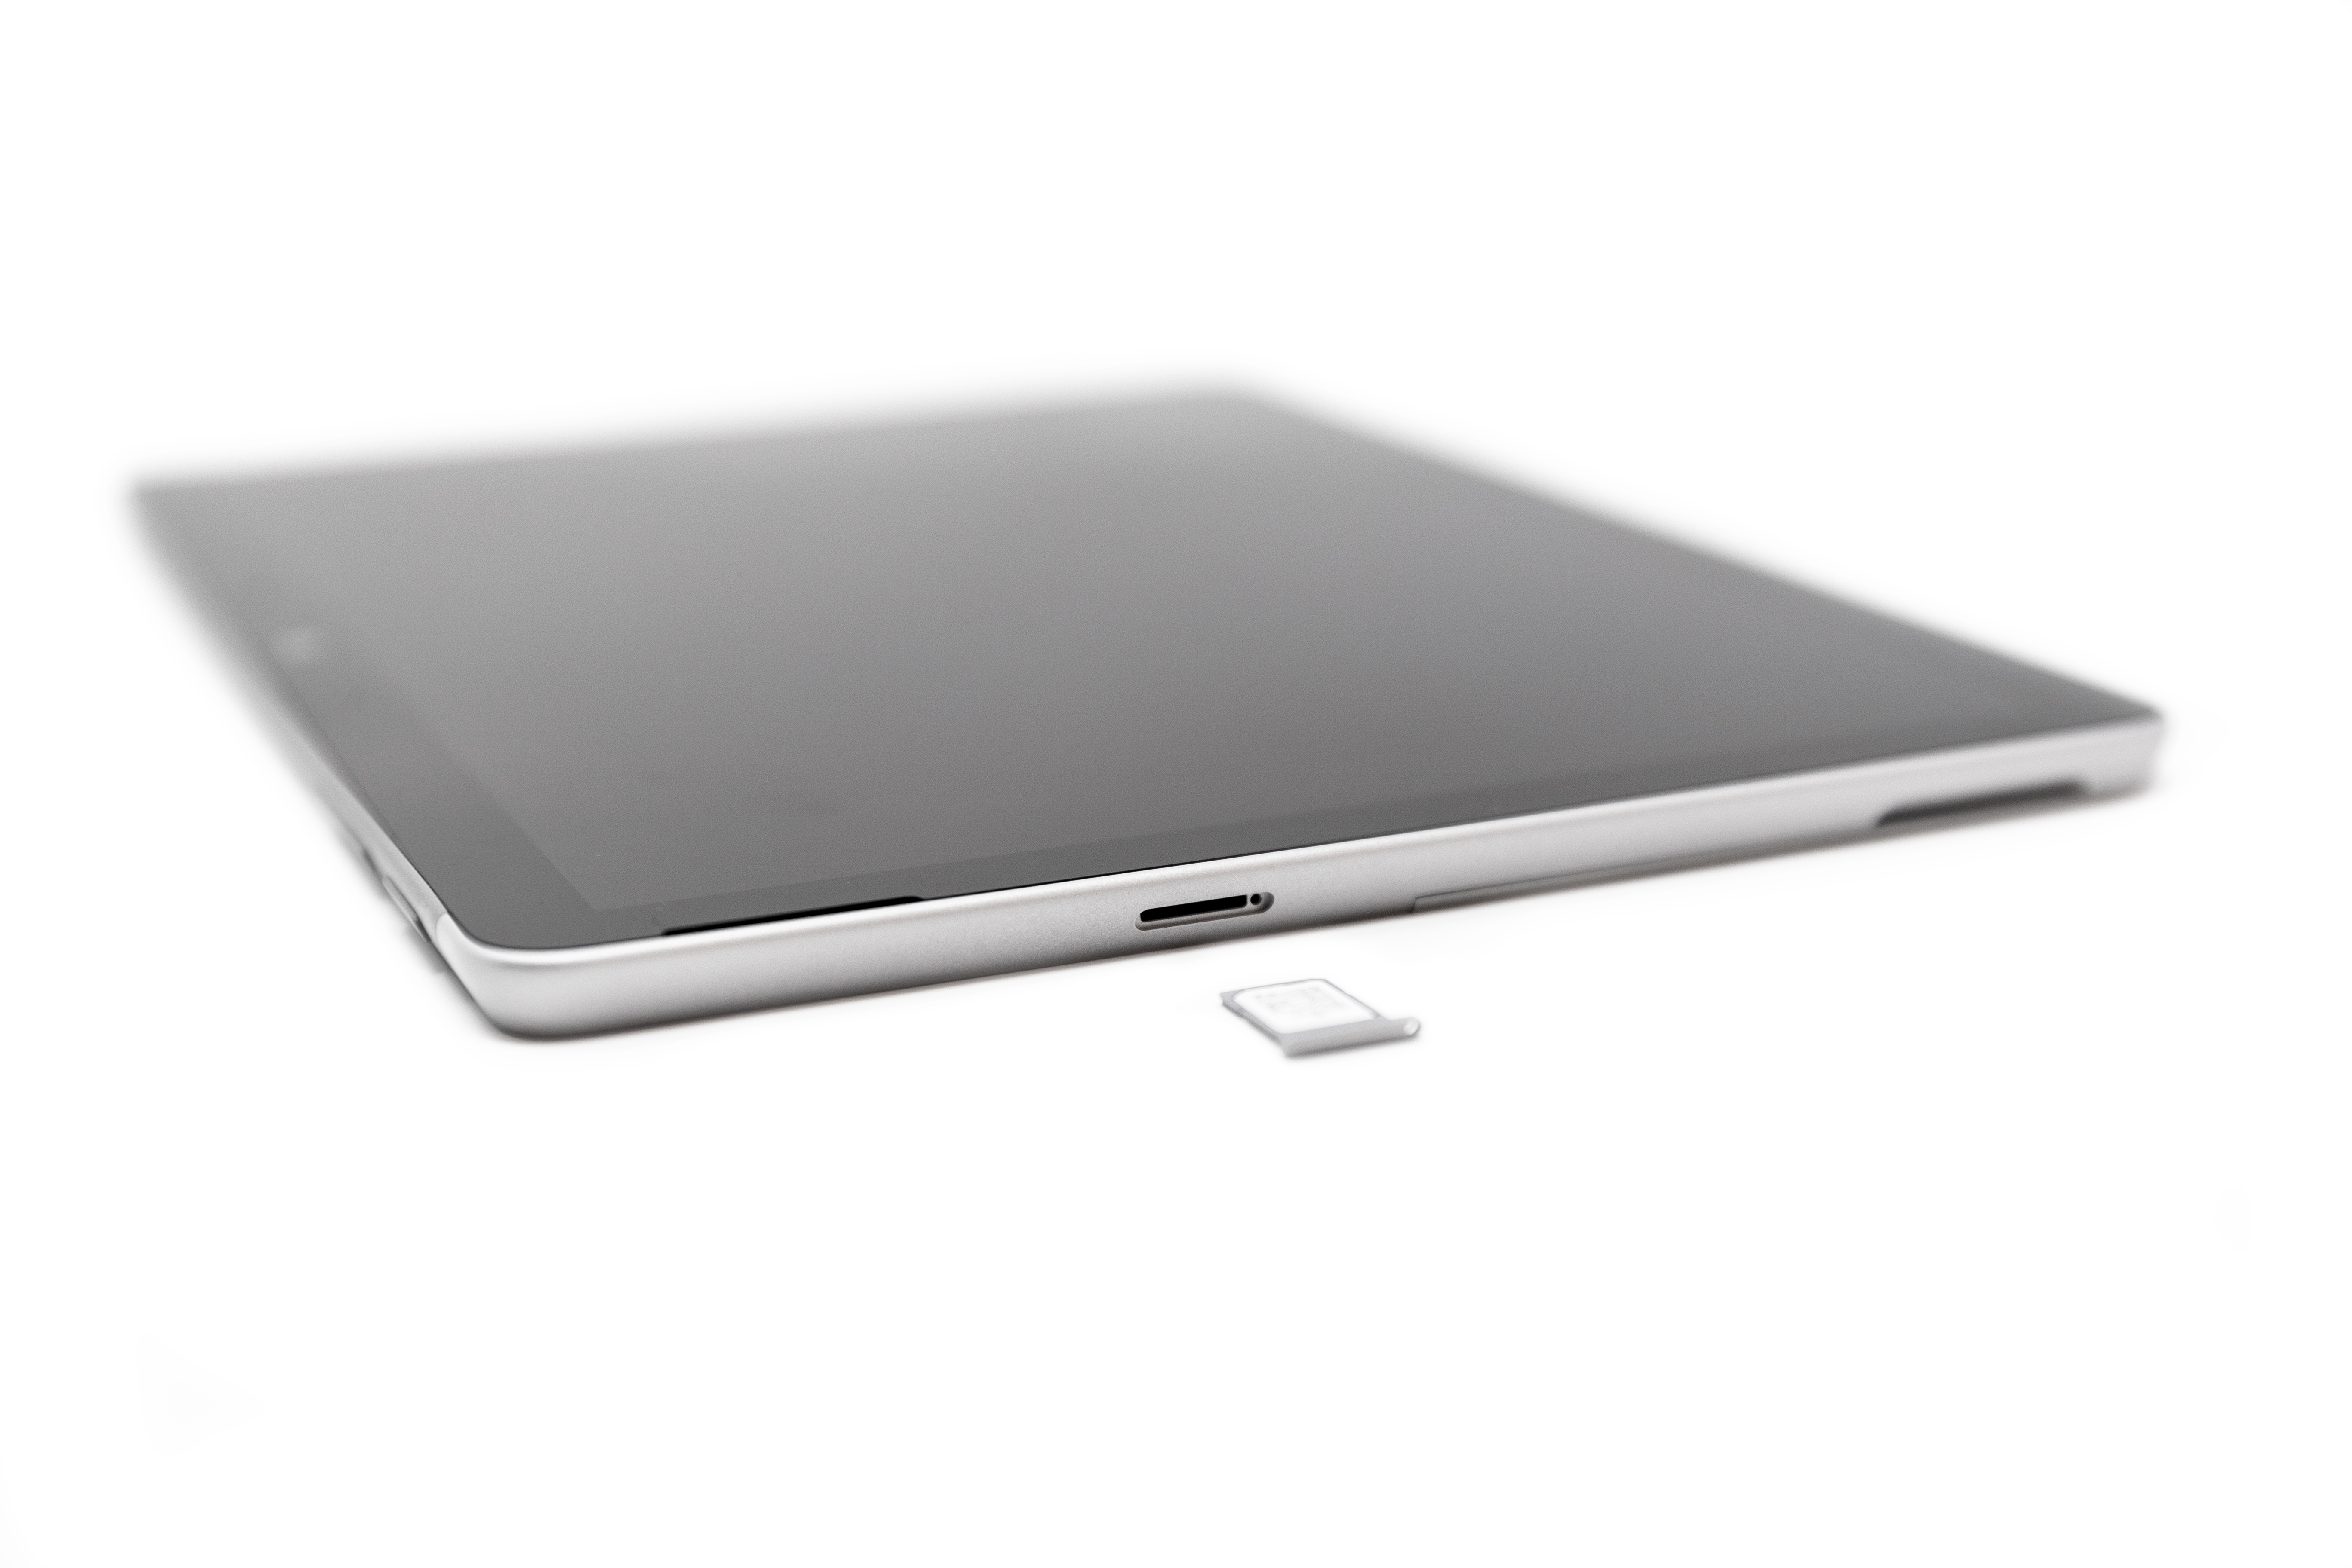 Surface Go 2 with a SIM card placed in the SIM tray.